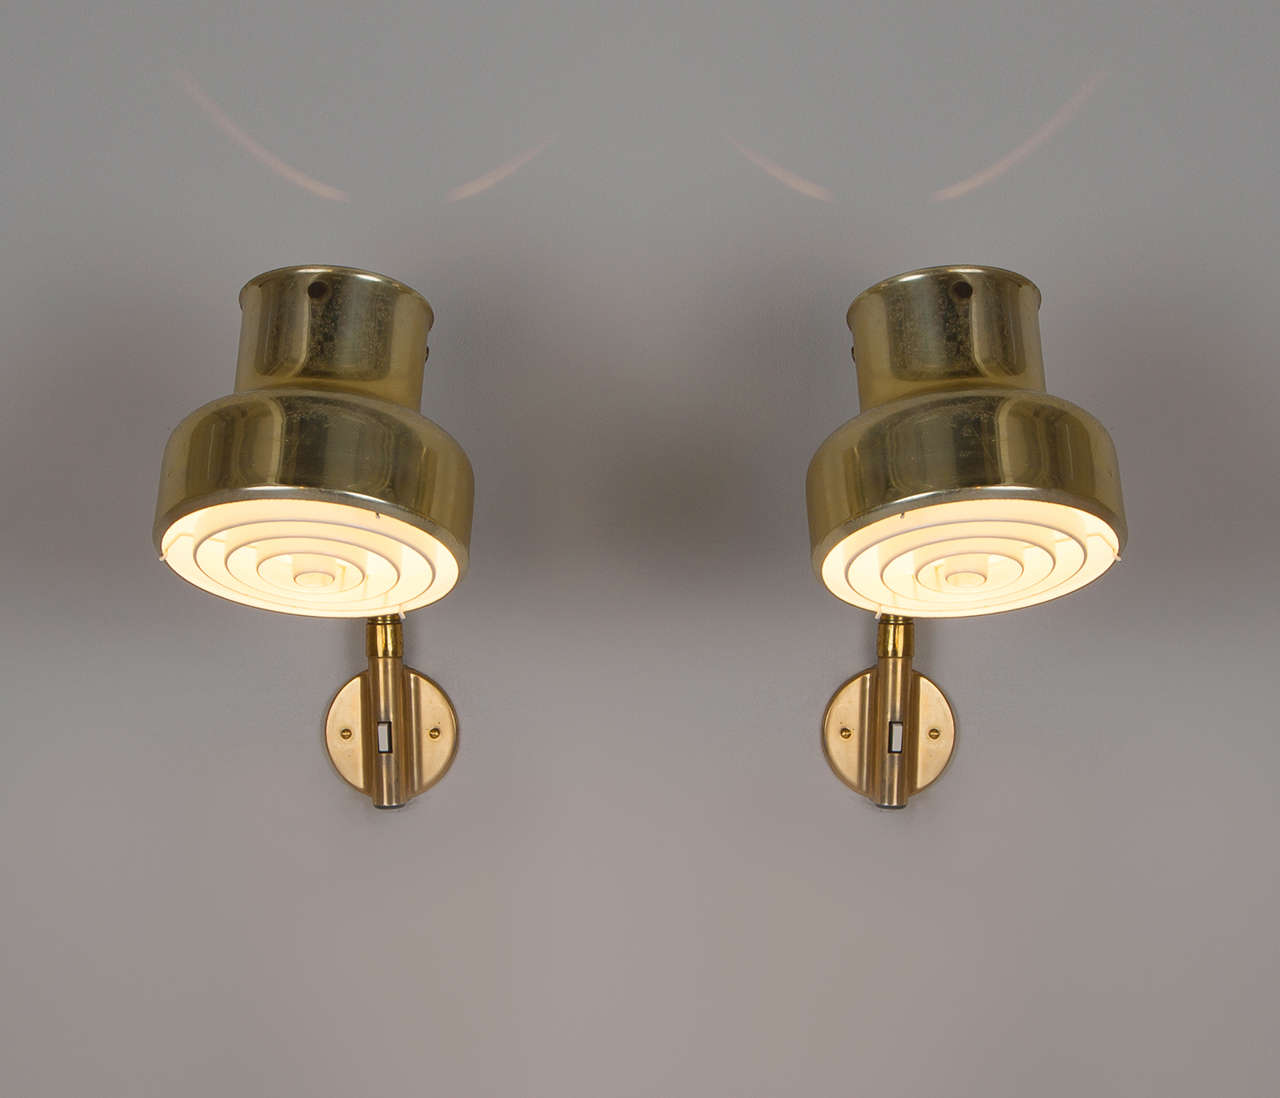 Nine Brass Colored Wall Lights by Anders Pehrson for Atelje Lyktan For Sale at 1stdibs